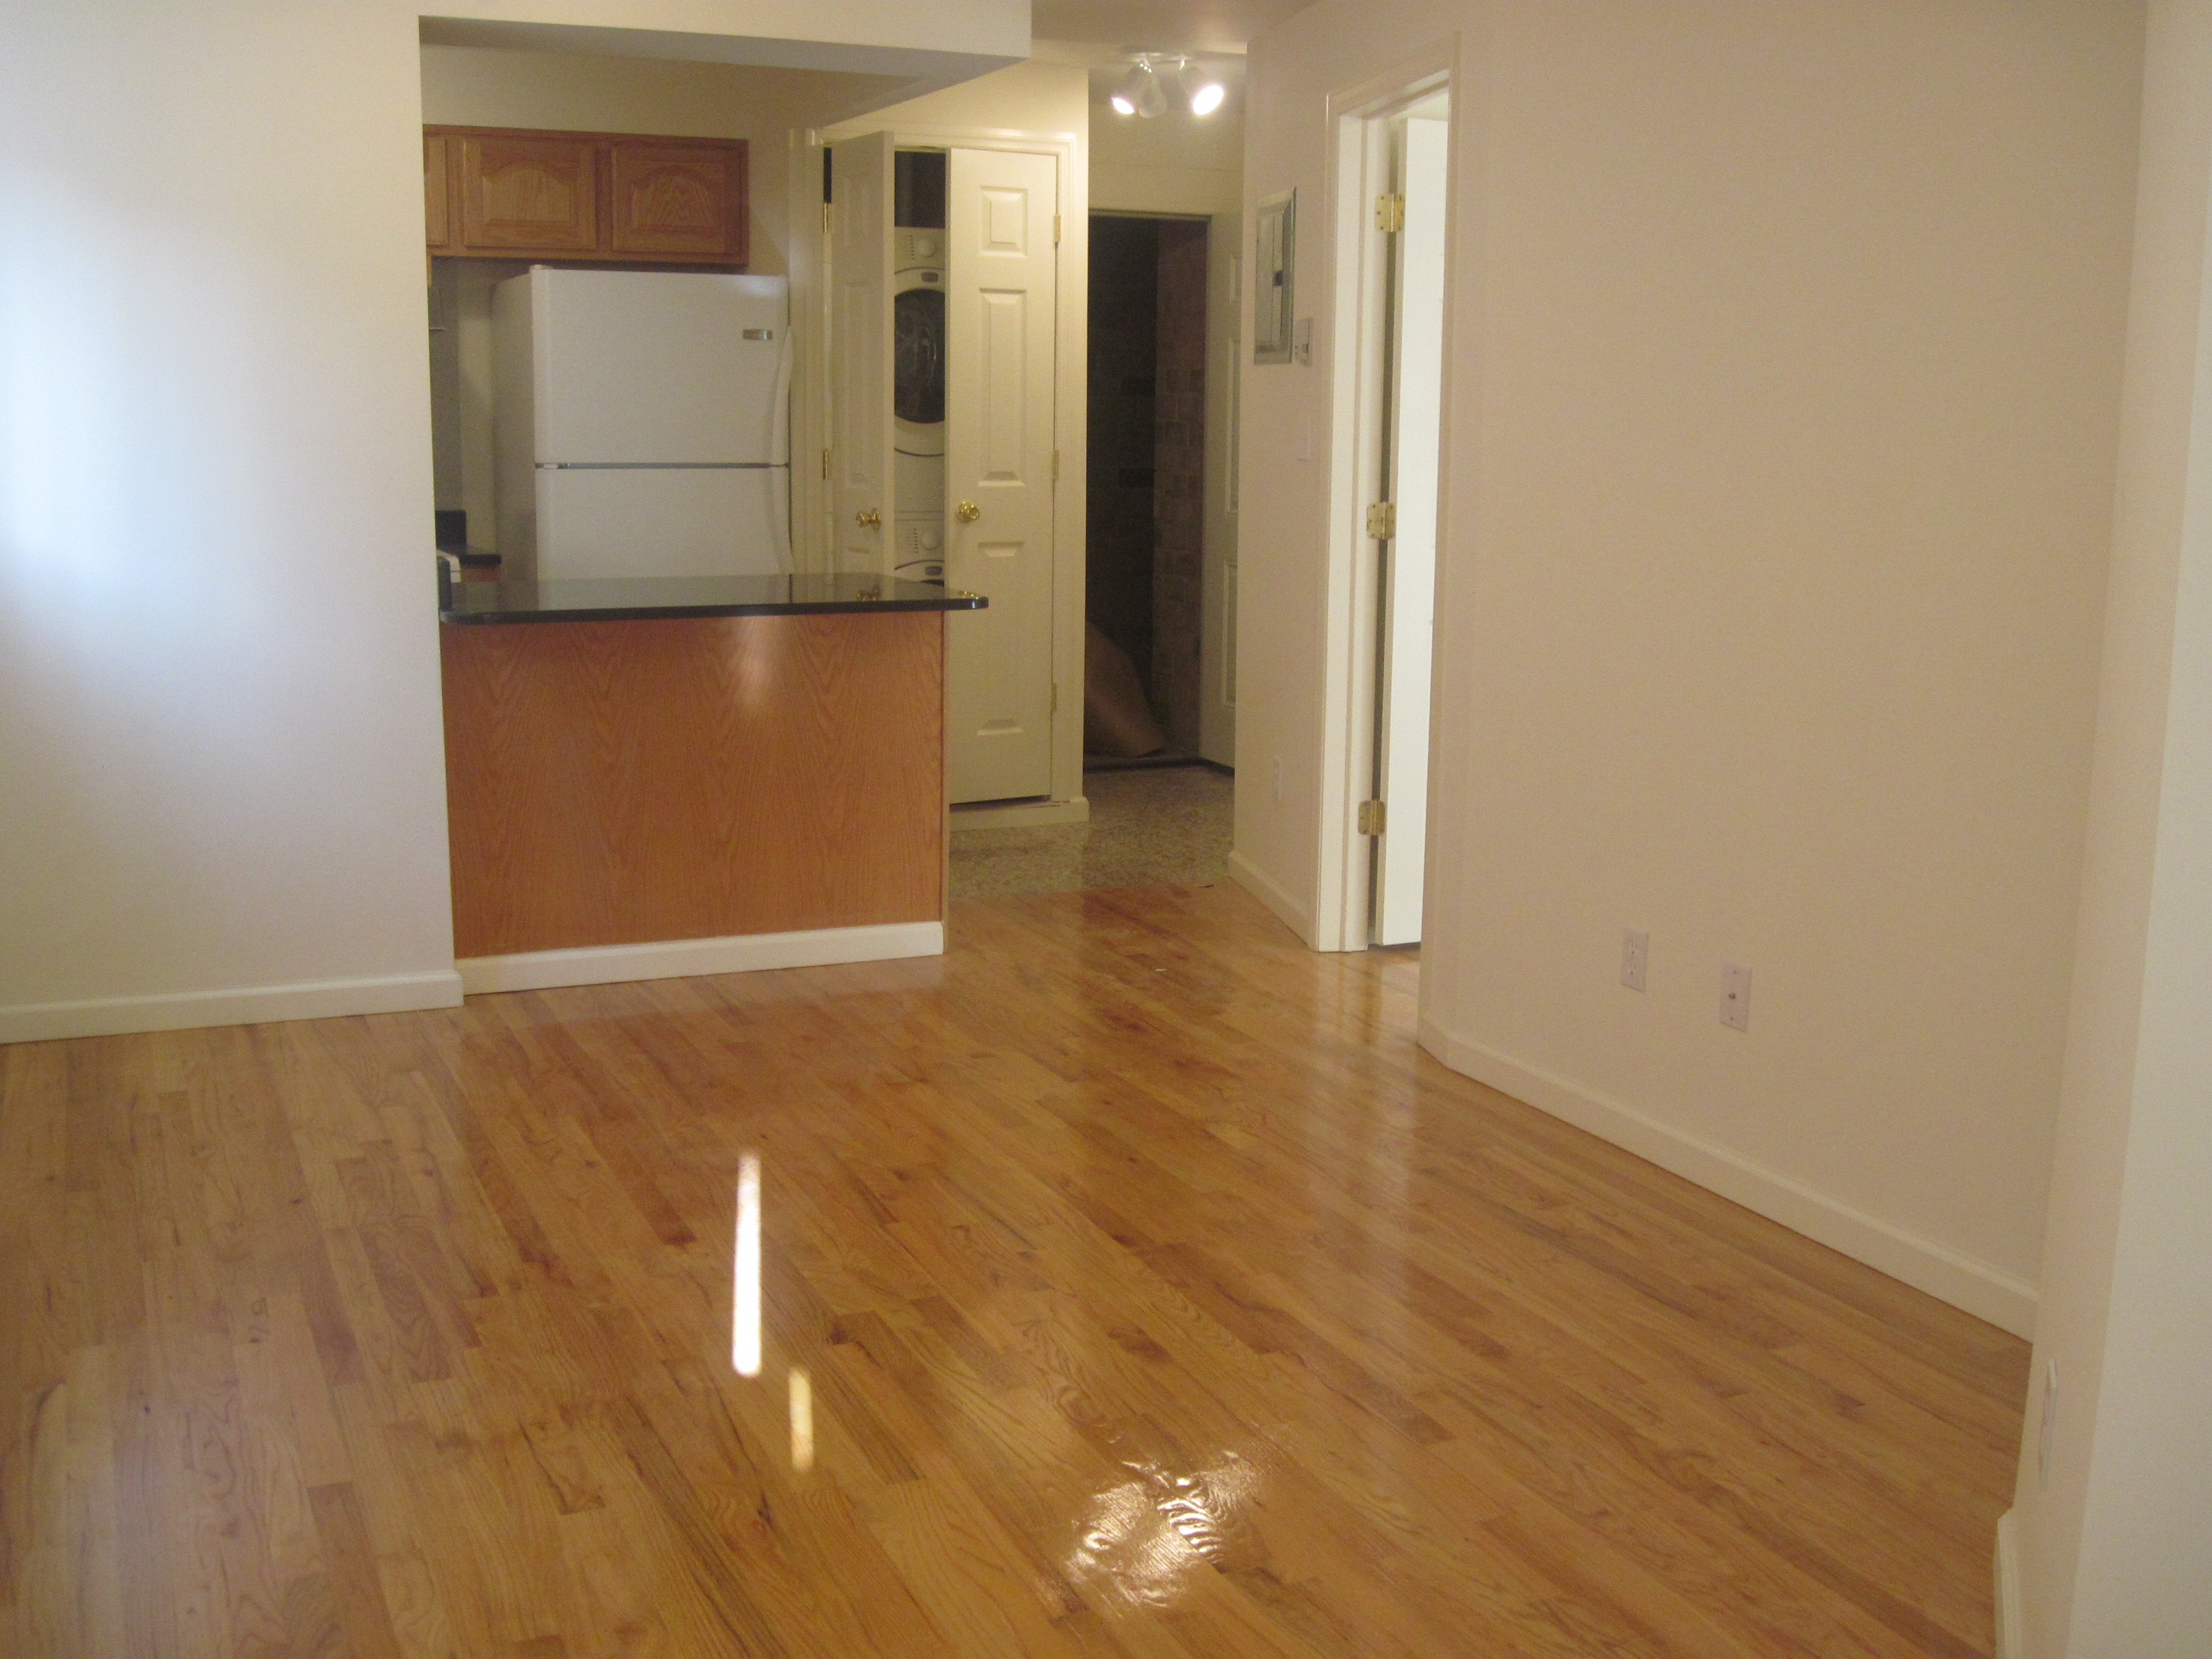 Beautiful Newly Built Condo. 1 Bedroom, Granite Counter Tops, Wood Floors Throughout, Washer/Dryer in Unit, Storage. Convenine to Transportation and Shopping.